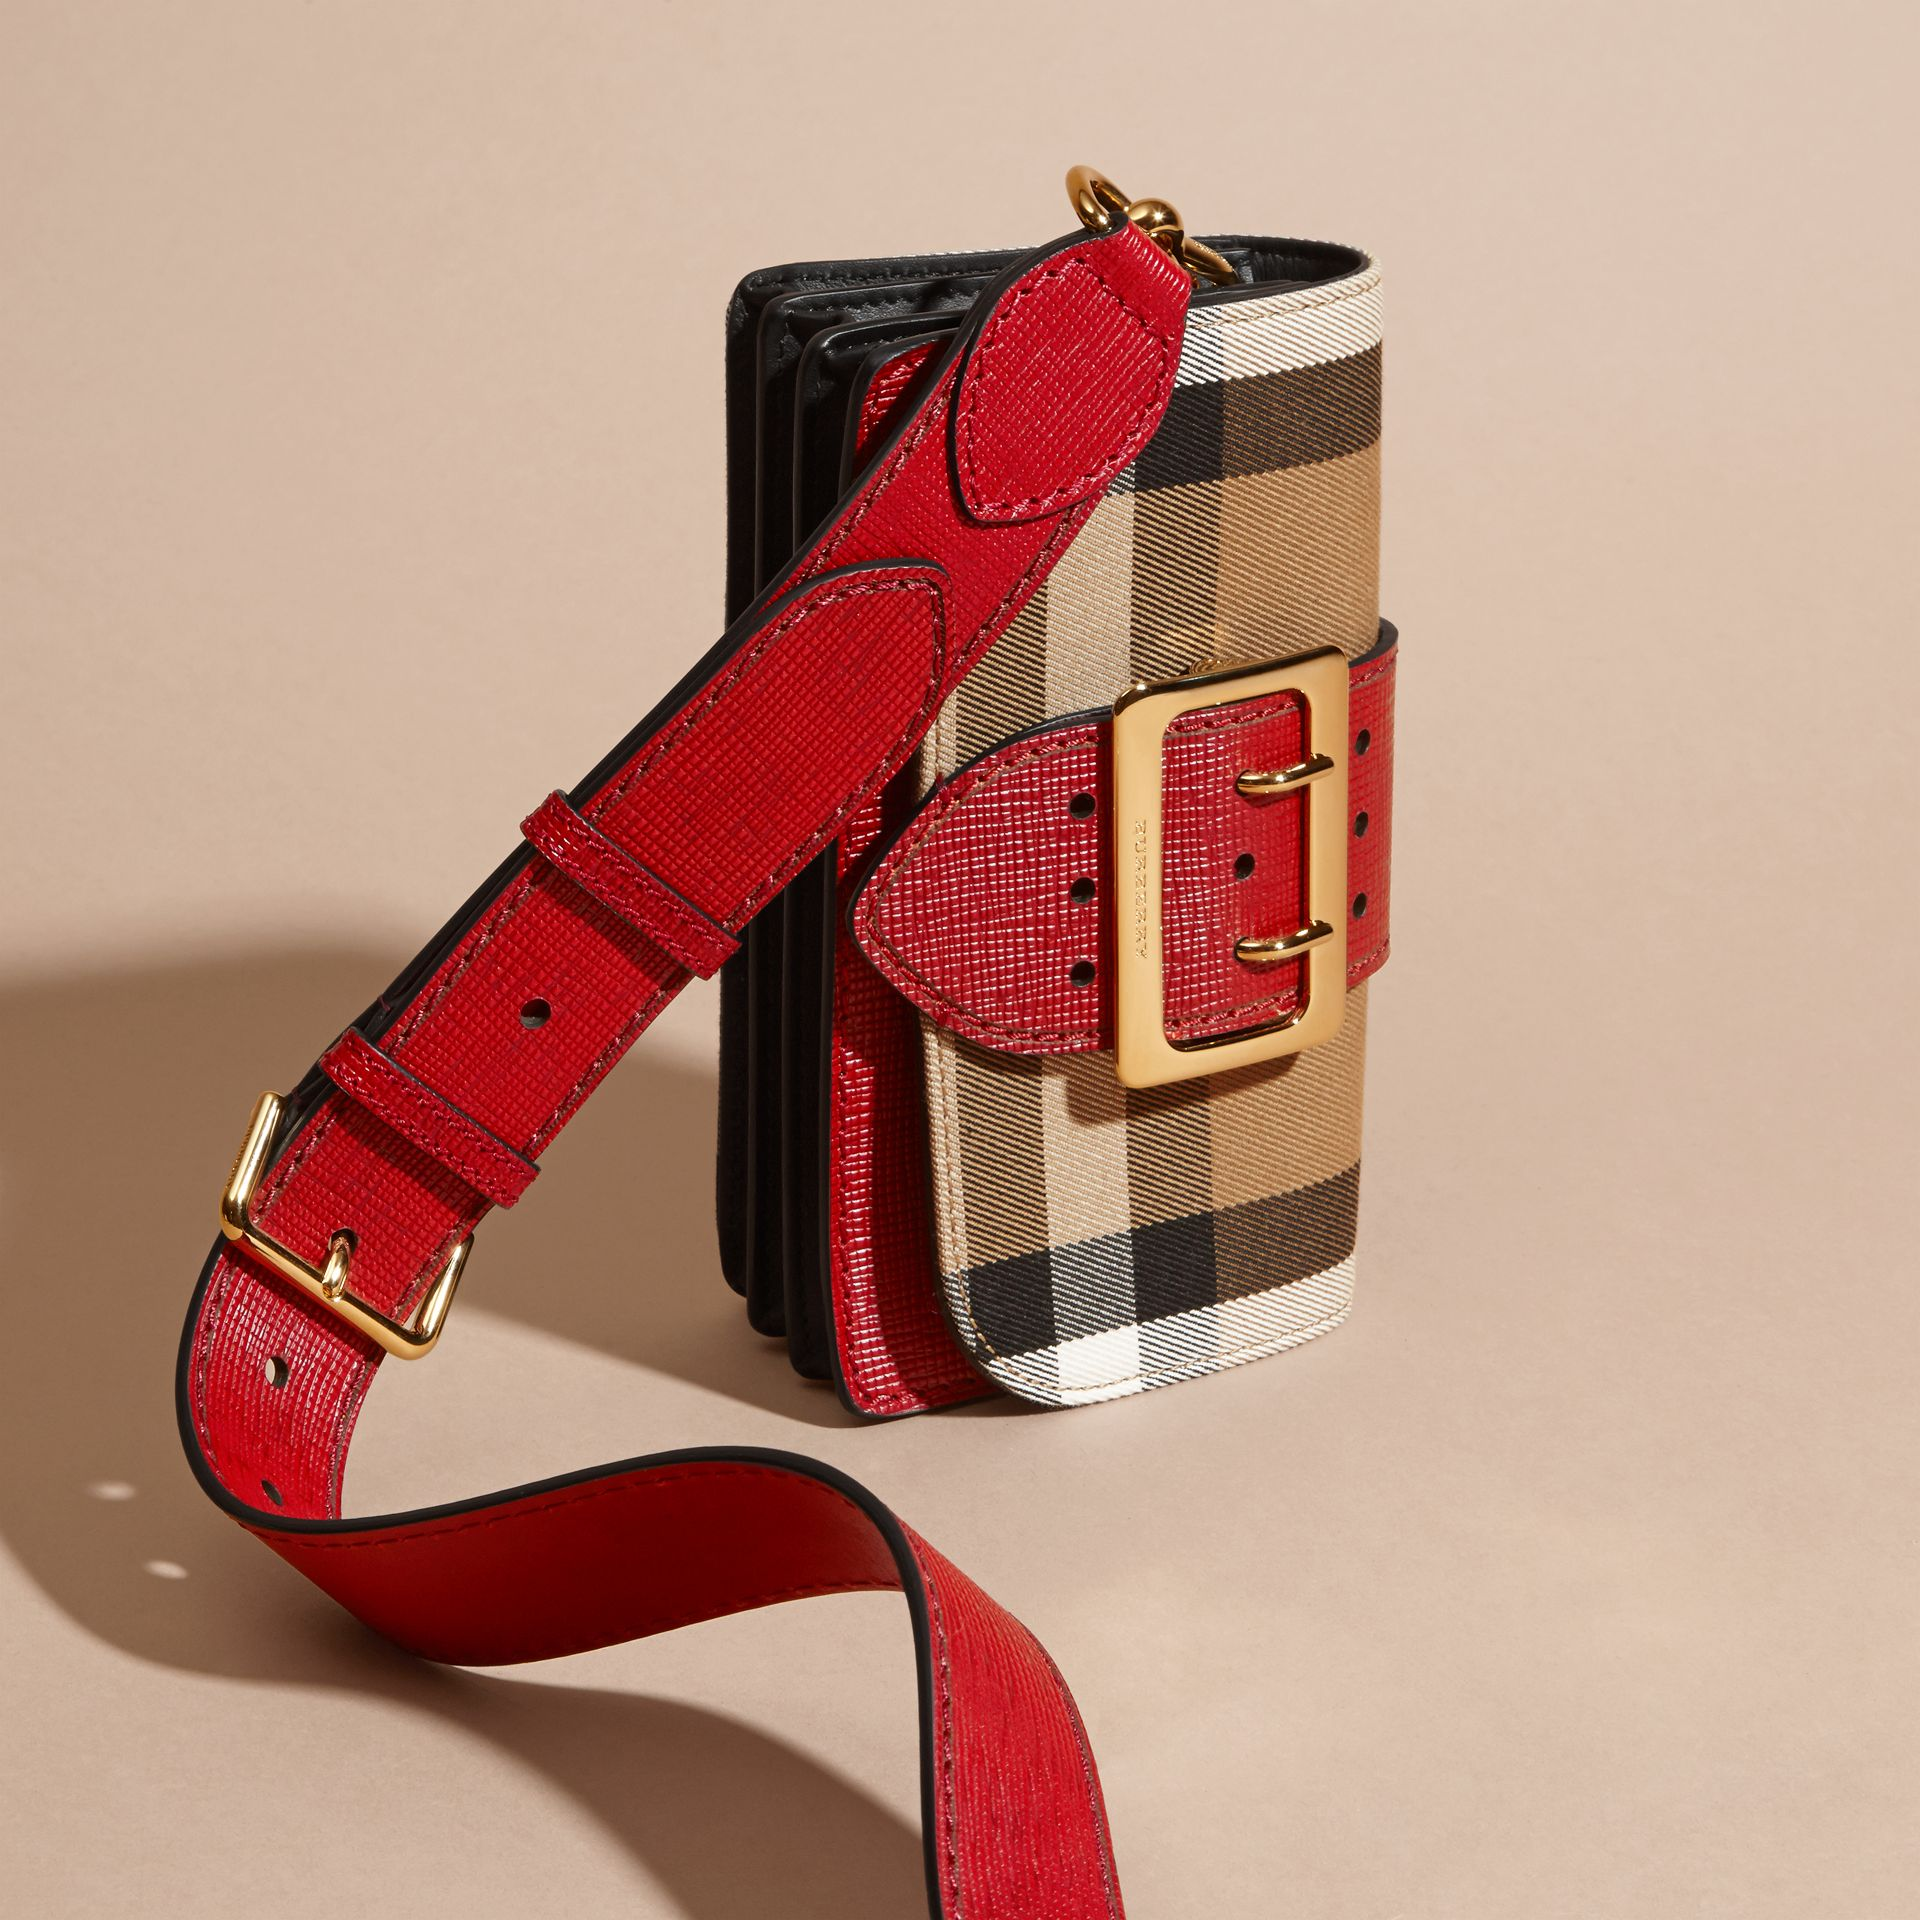 The Small Buckle Bag in House Check and Leather in Military Red/military Red - Women | Burberry - gallery image 8